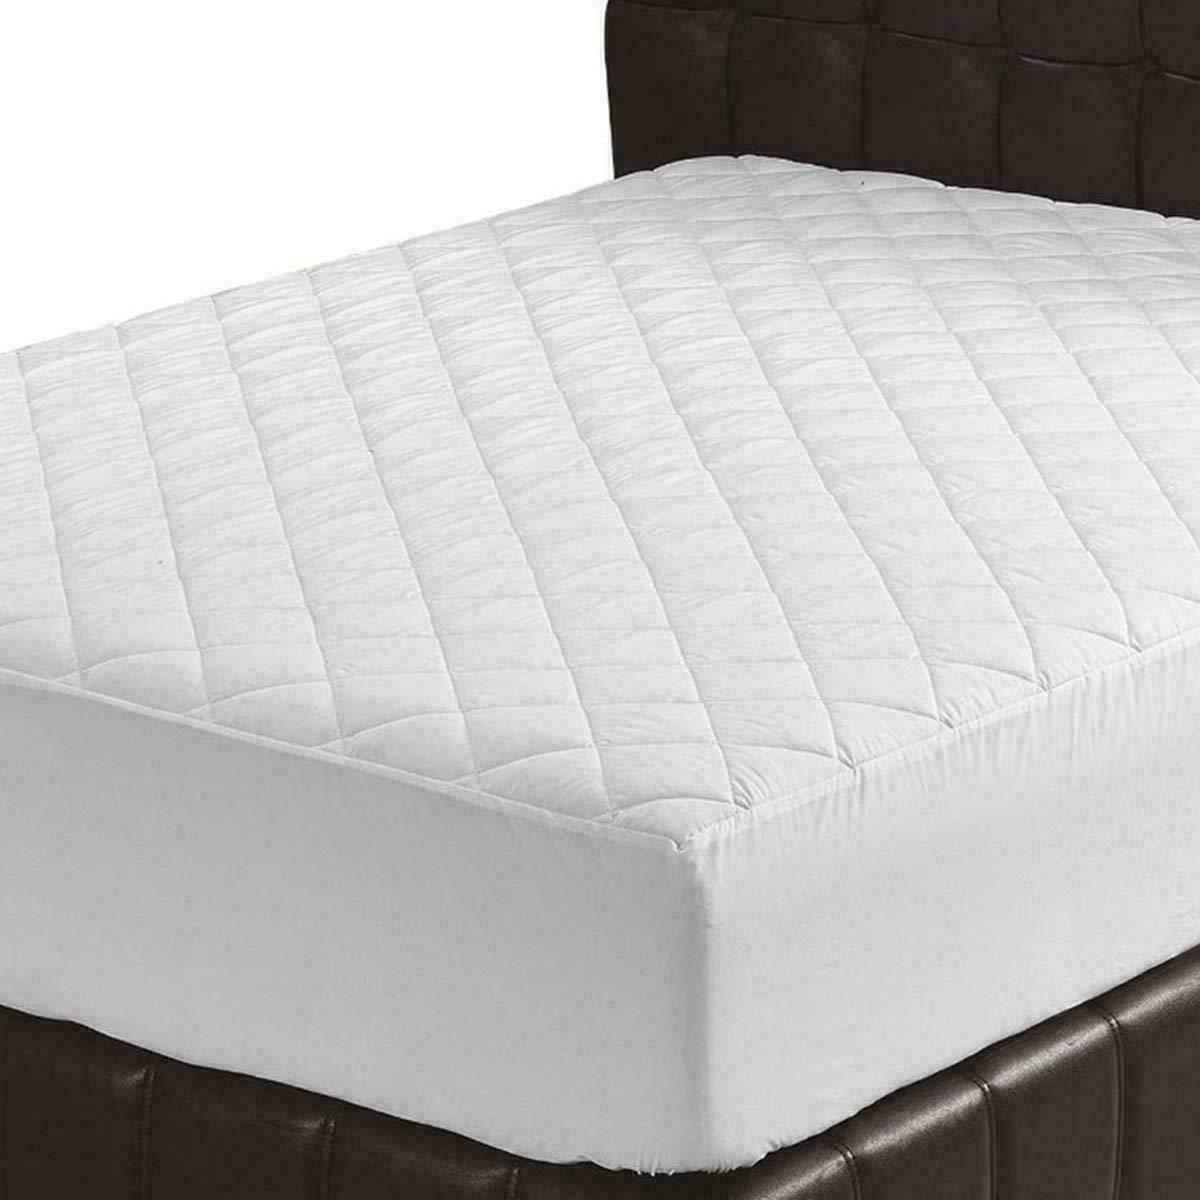 Memory Foam Topper Mattress Cover Queen Size Bed Pad Matress